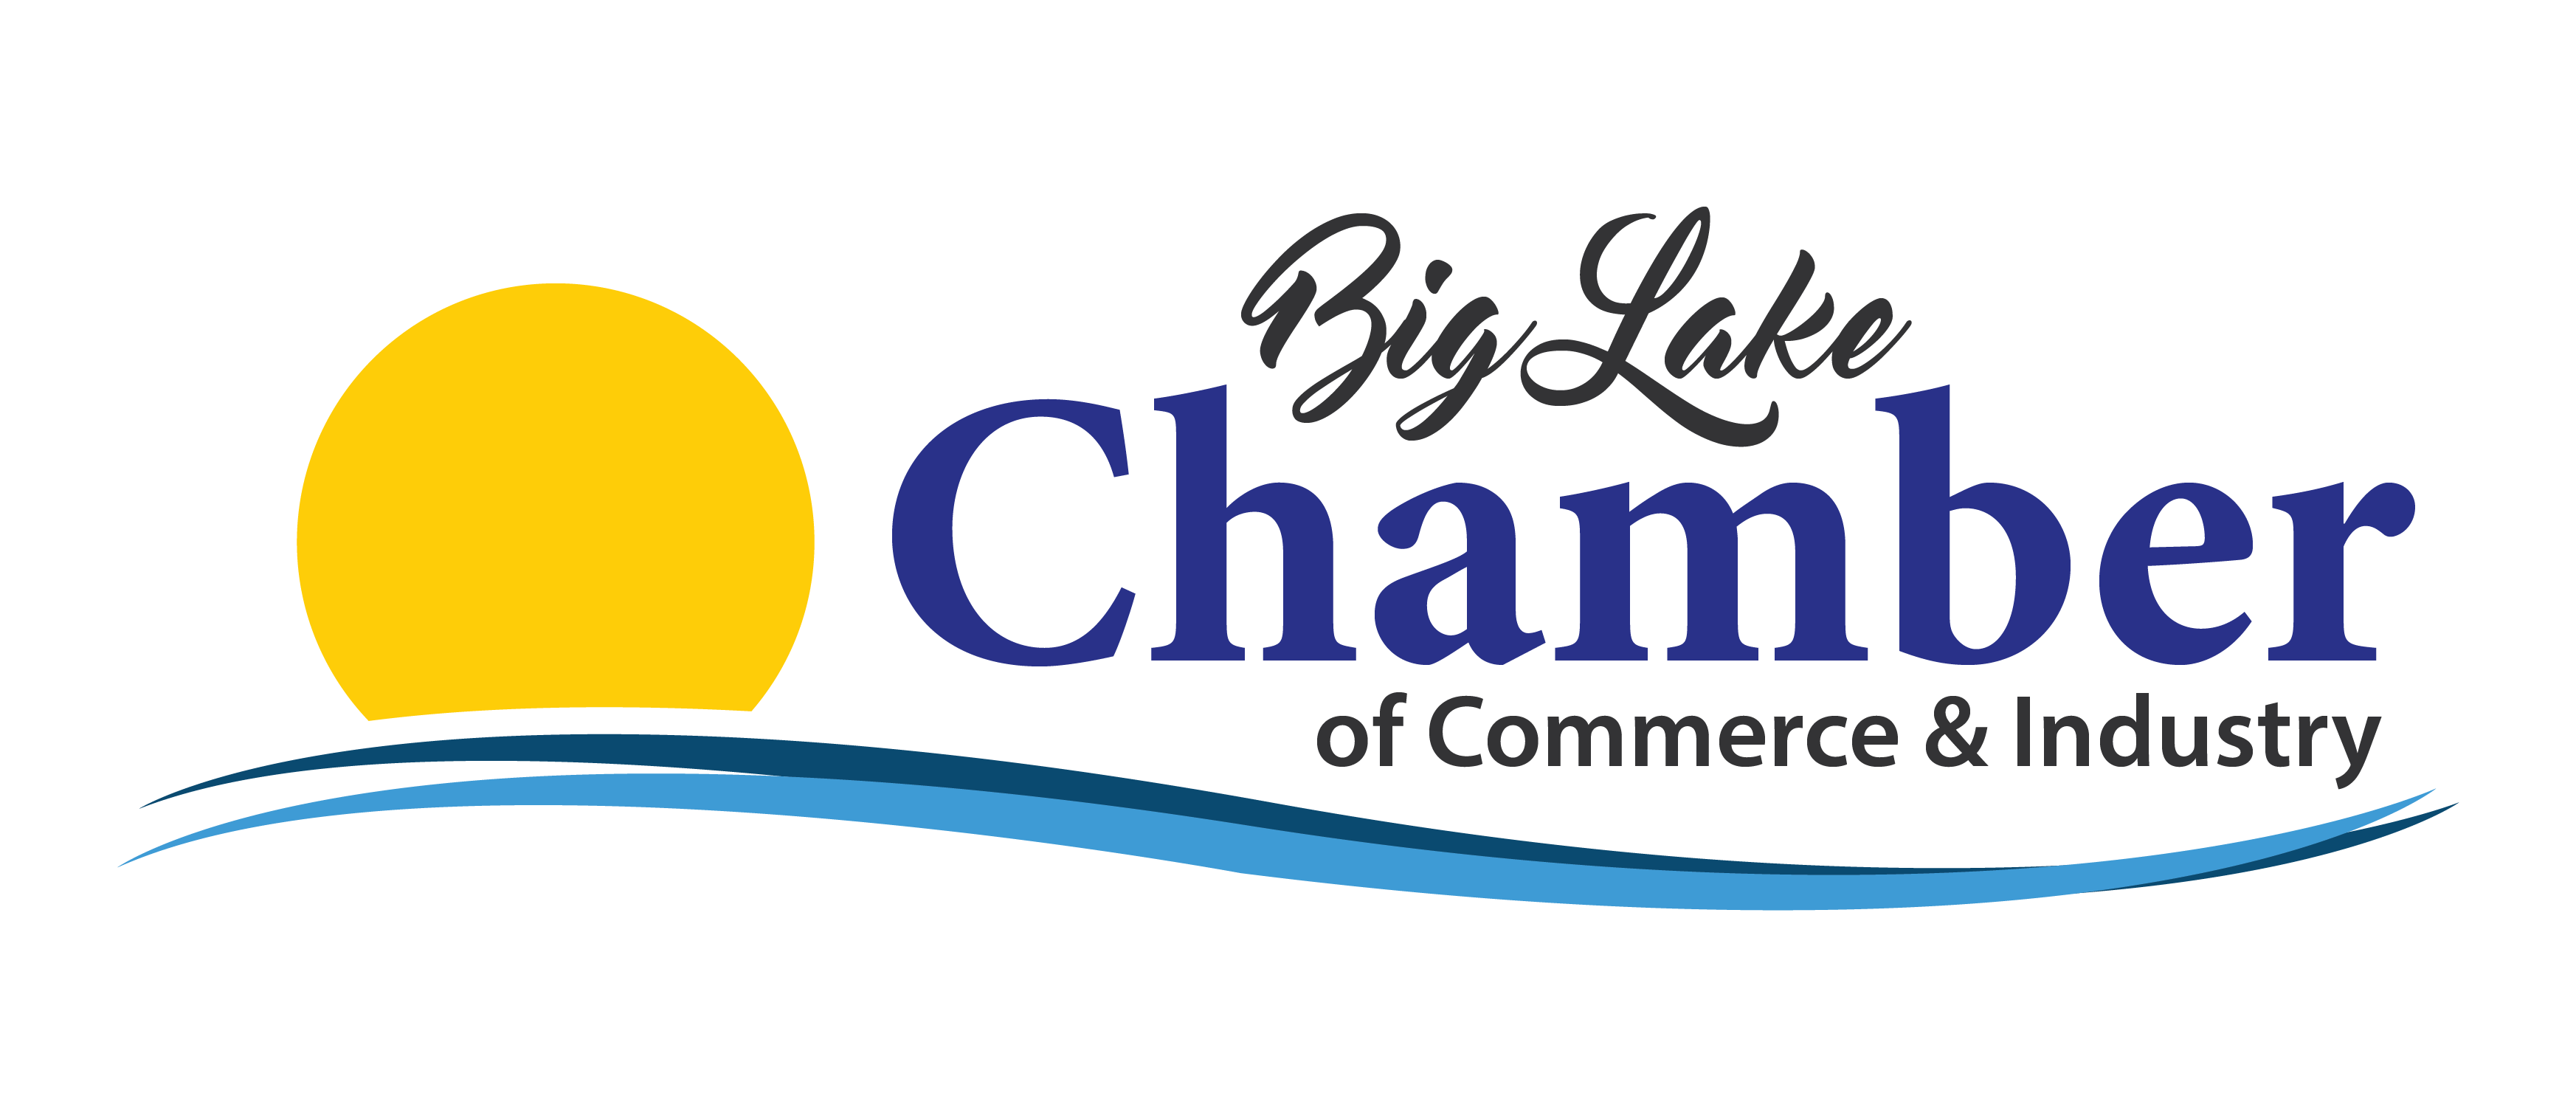 Big Lake Chamber of Commerce